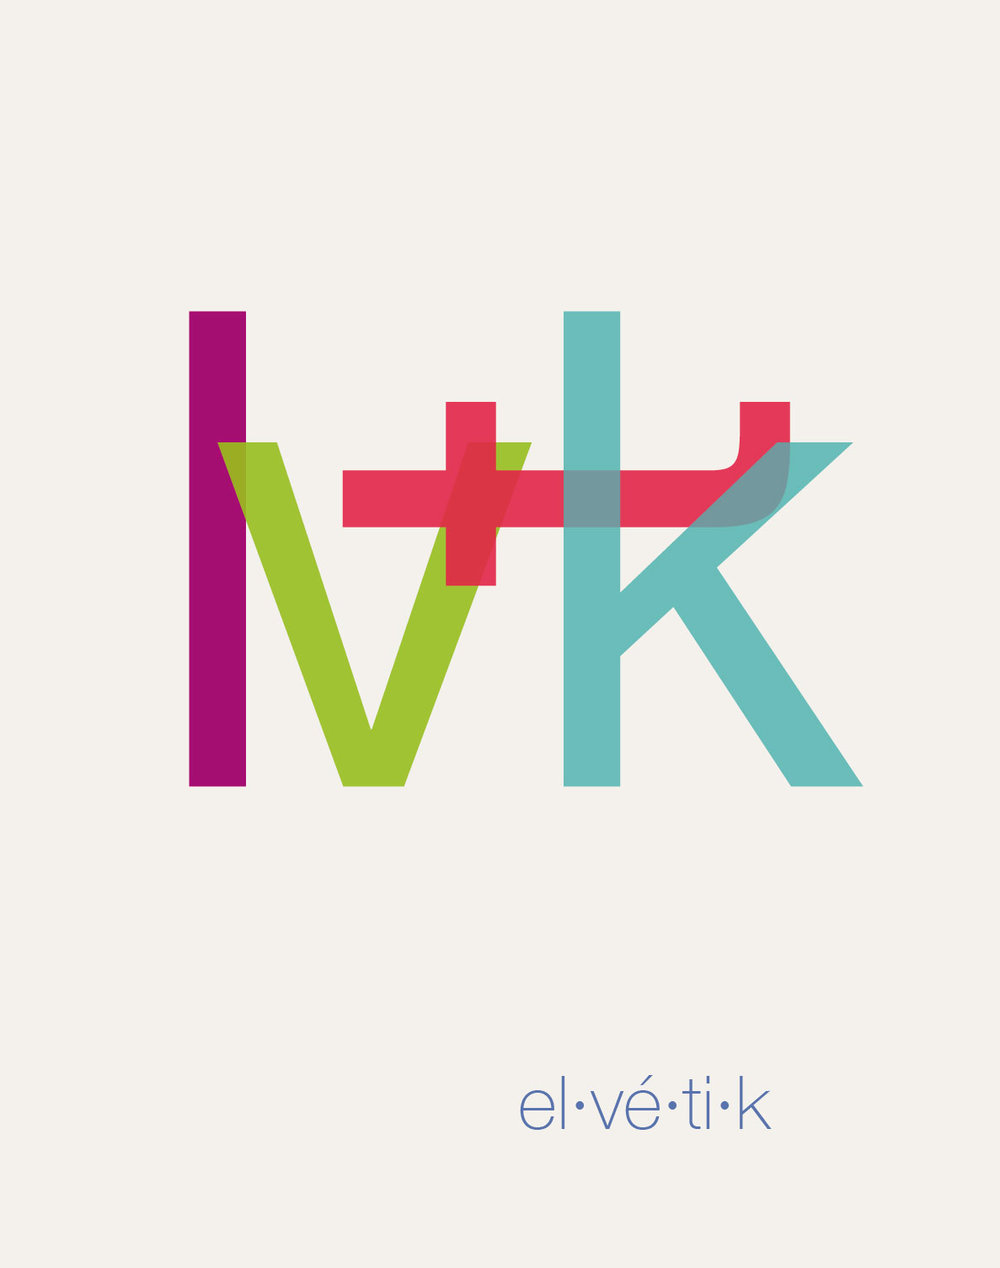 LVTK - Graphic Design & Typography